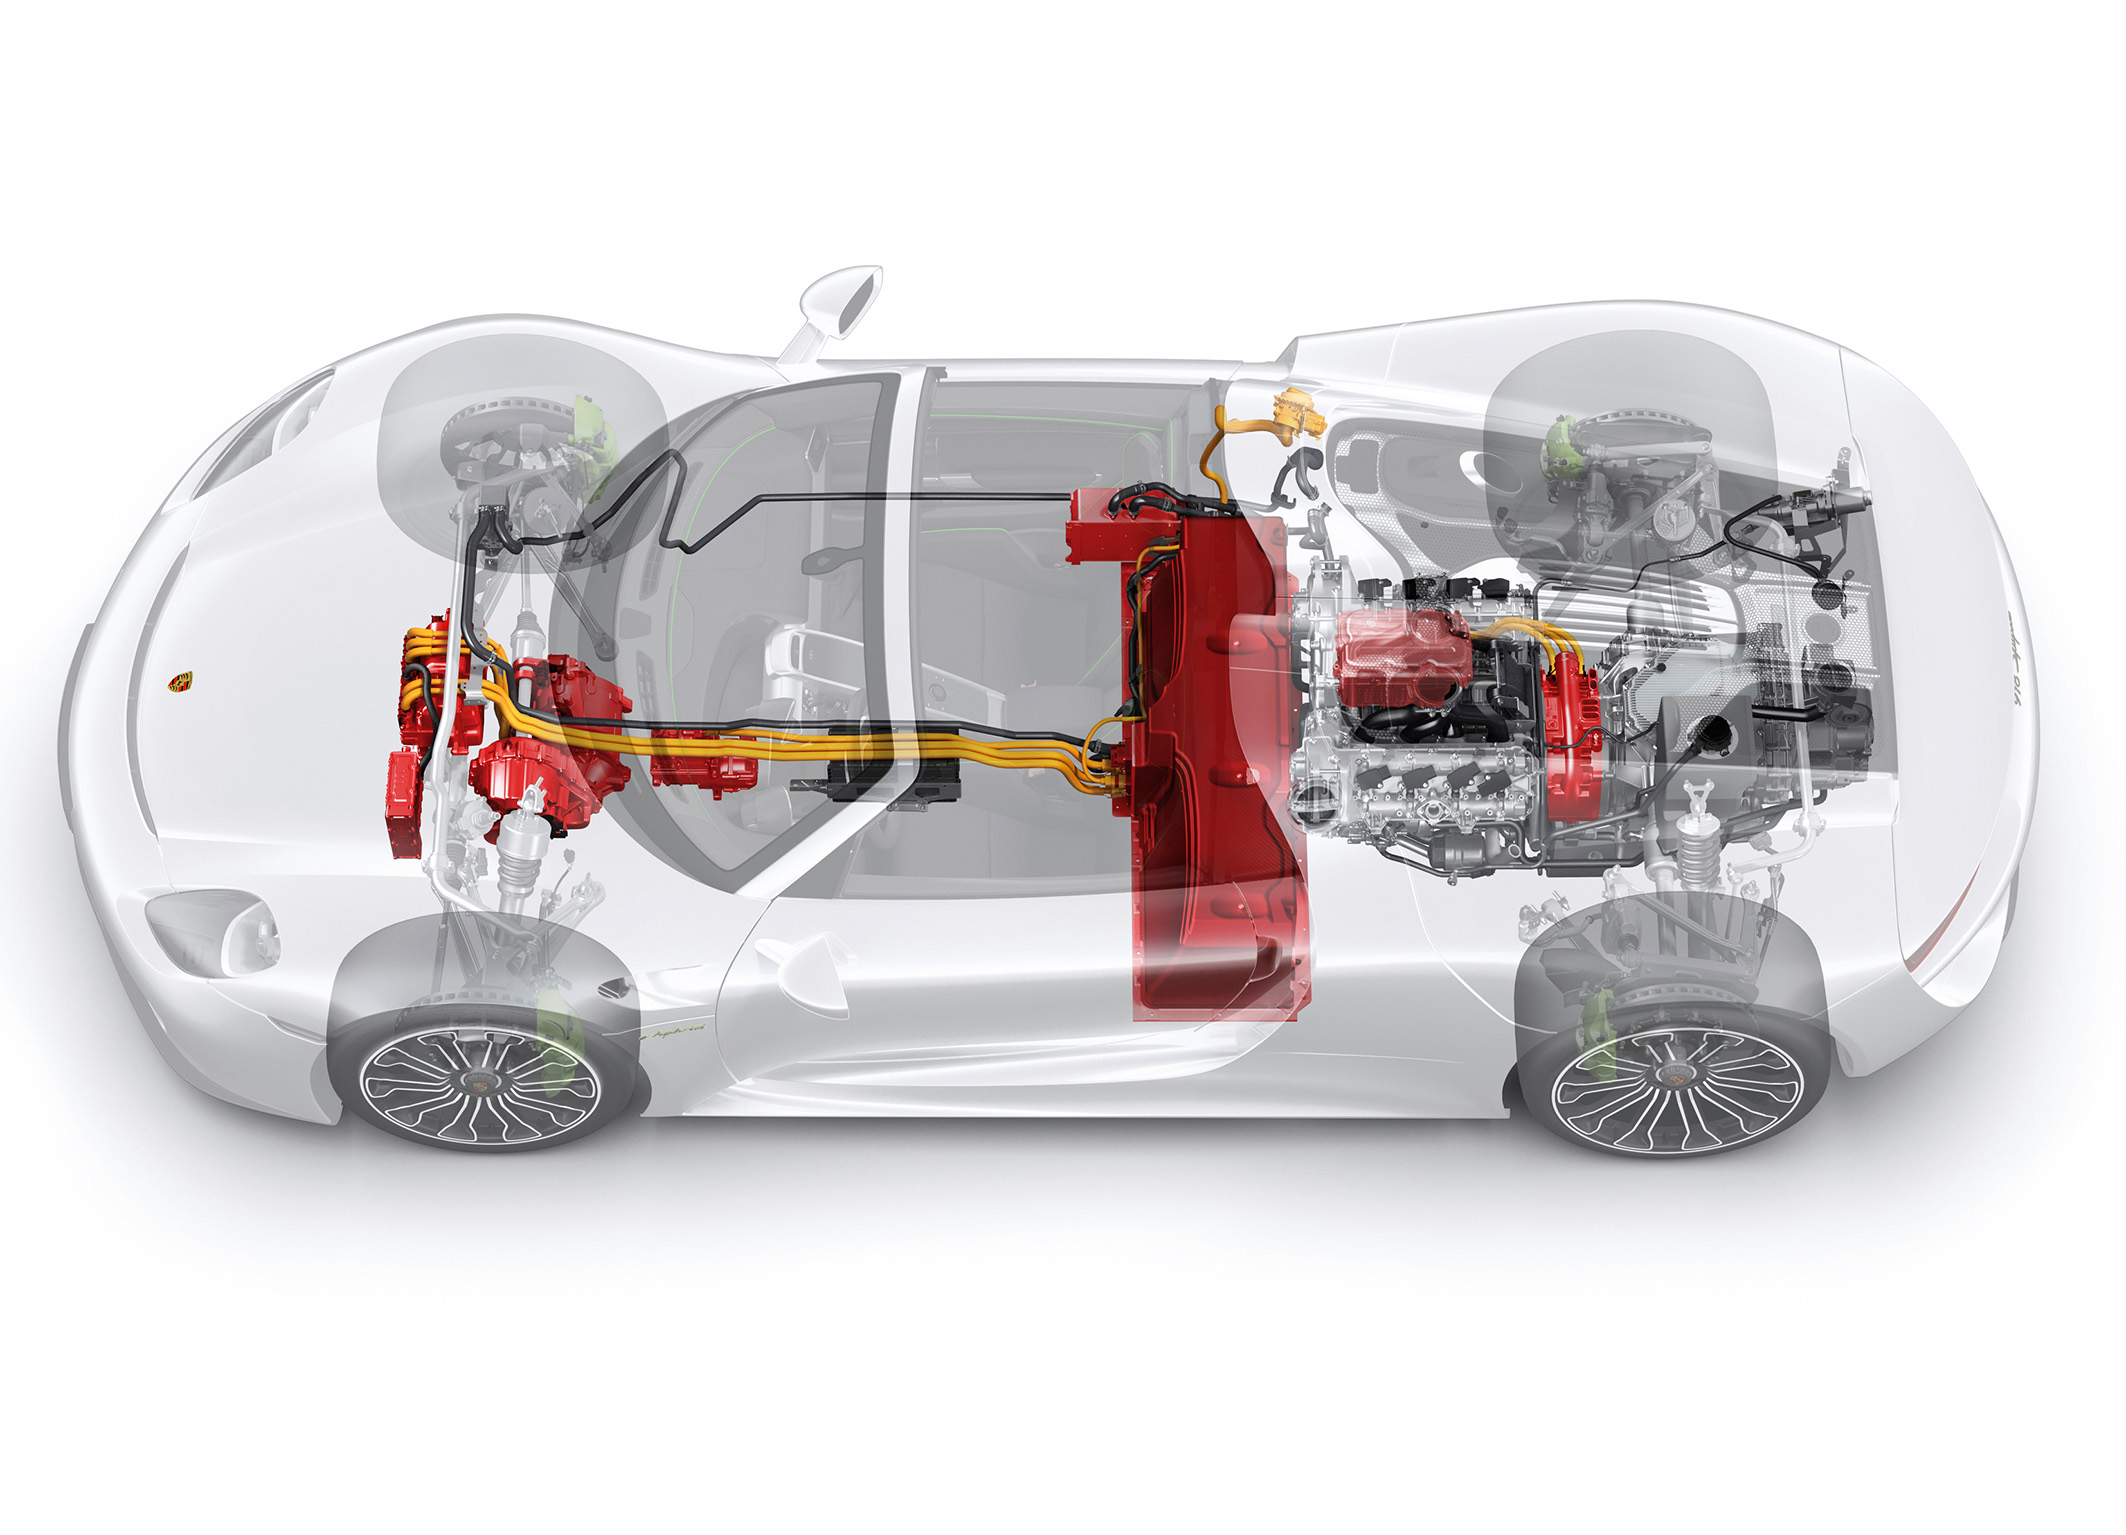 Electric Car Diagram Layout Engine Porsche Hybrid Models With Bosch Systems 2126x1535